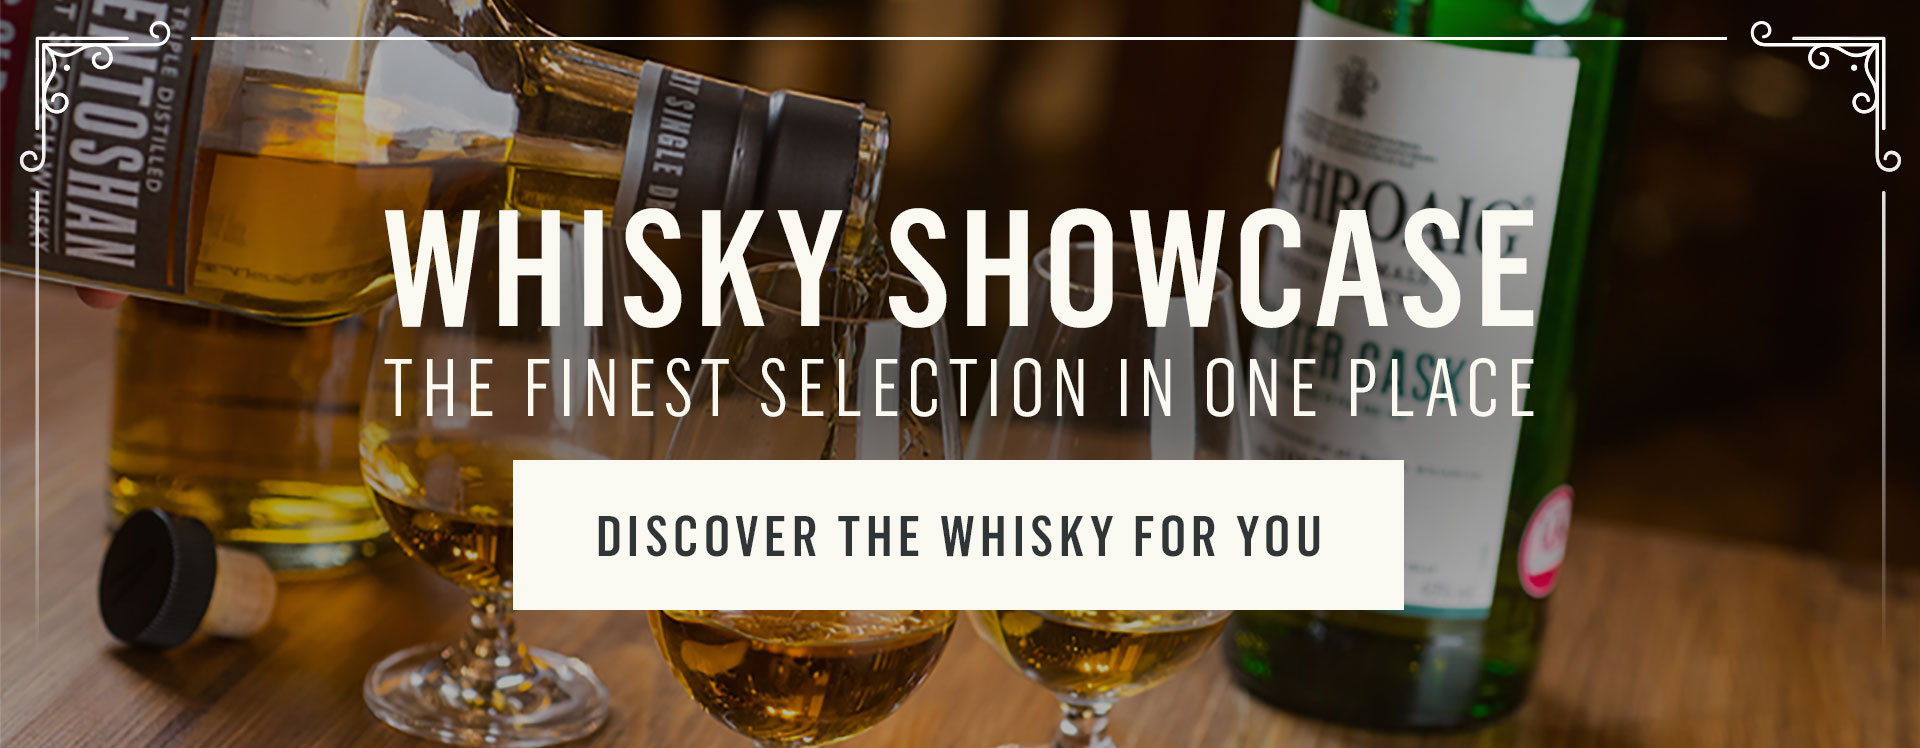 Whisky Showcase at The Horniman at Hays in London